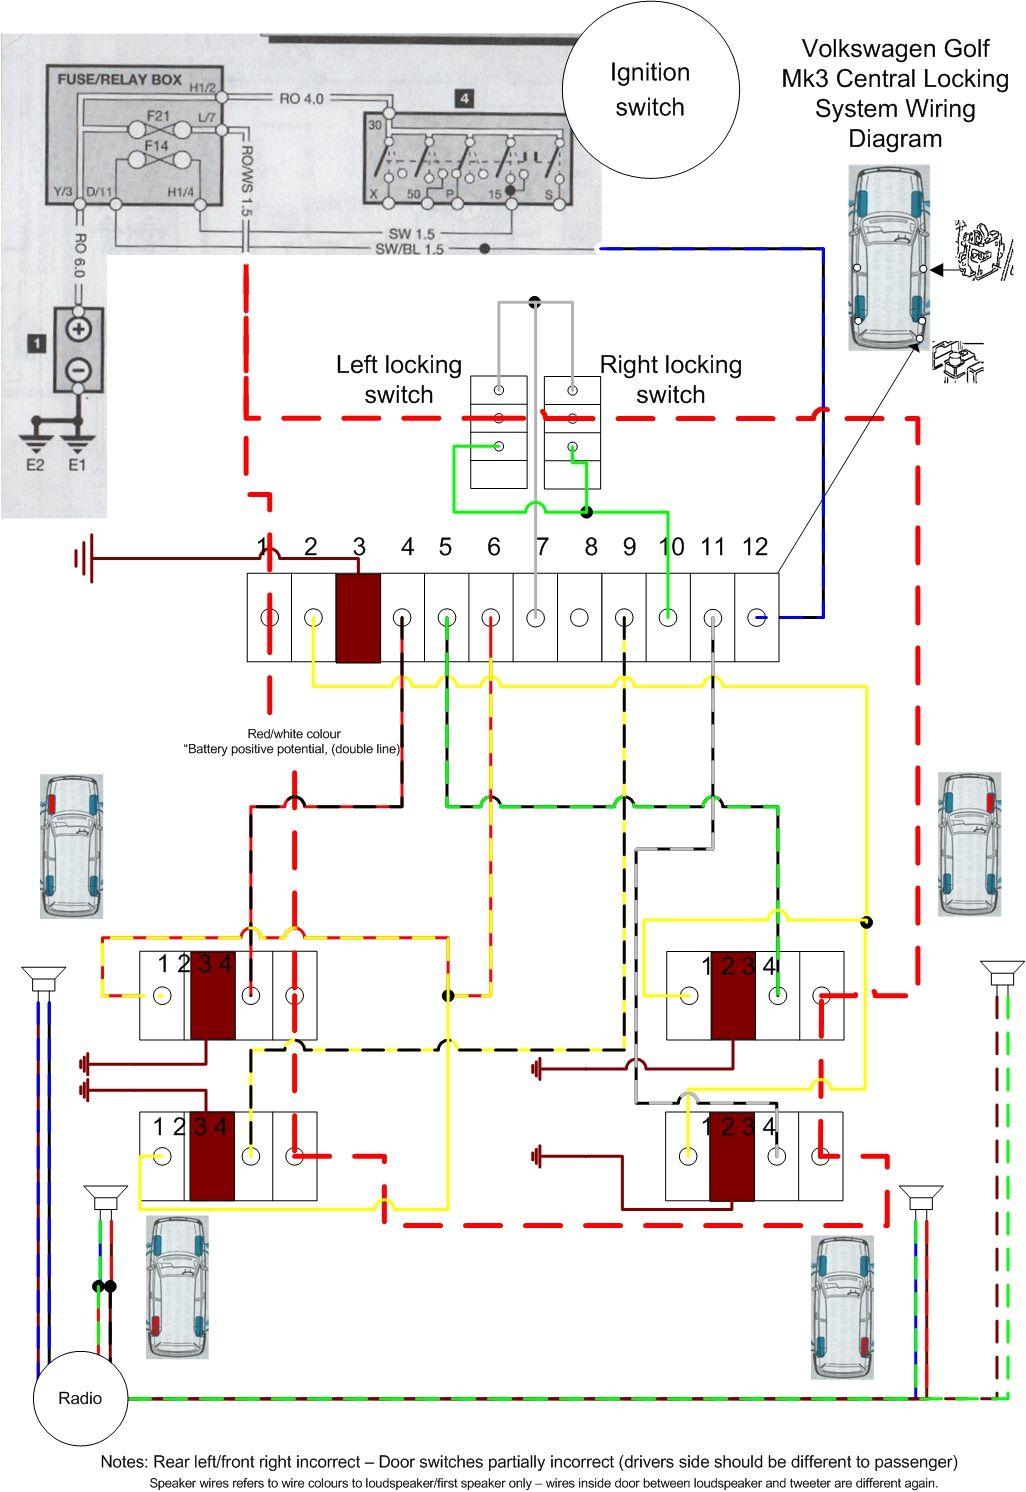 Vw Ignition Switch Wiring Diagram  | accessory for